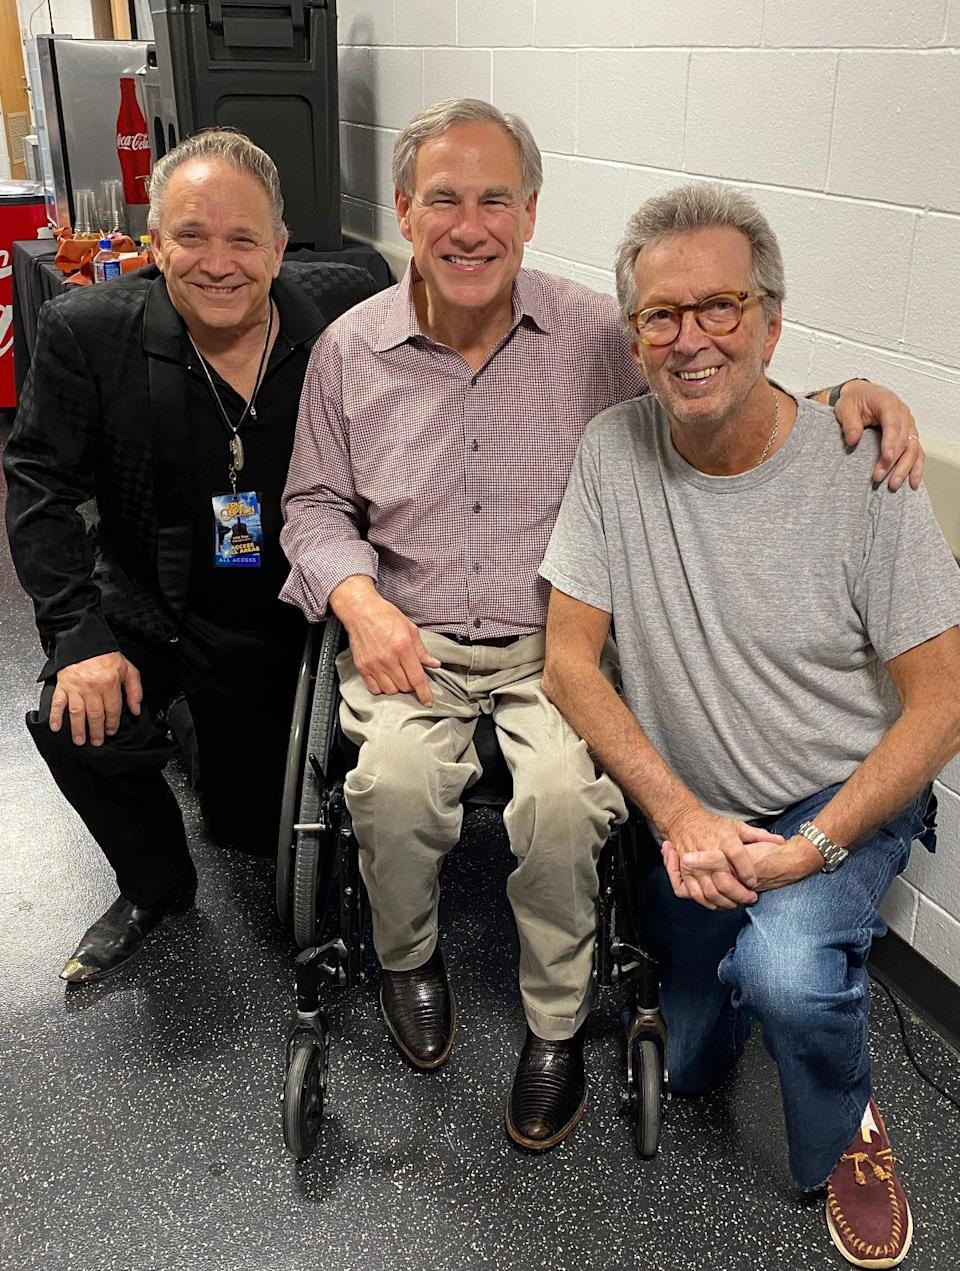 Texas Gov. Greg Abbott (middle), known for his attacks on abortion and voting rights, attended Clapton's recent Austin show. - Credit: Gov. Greg Abbott/Twitter